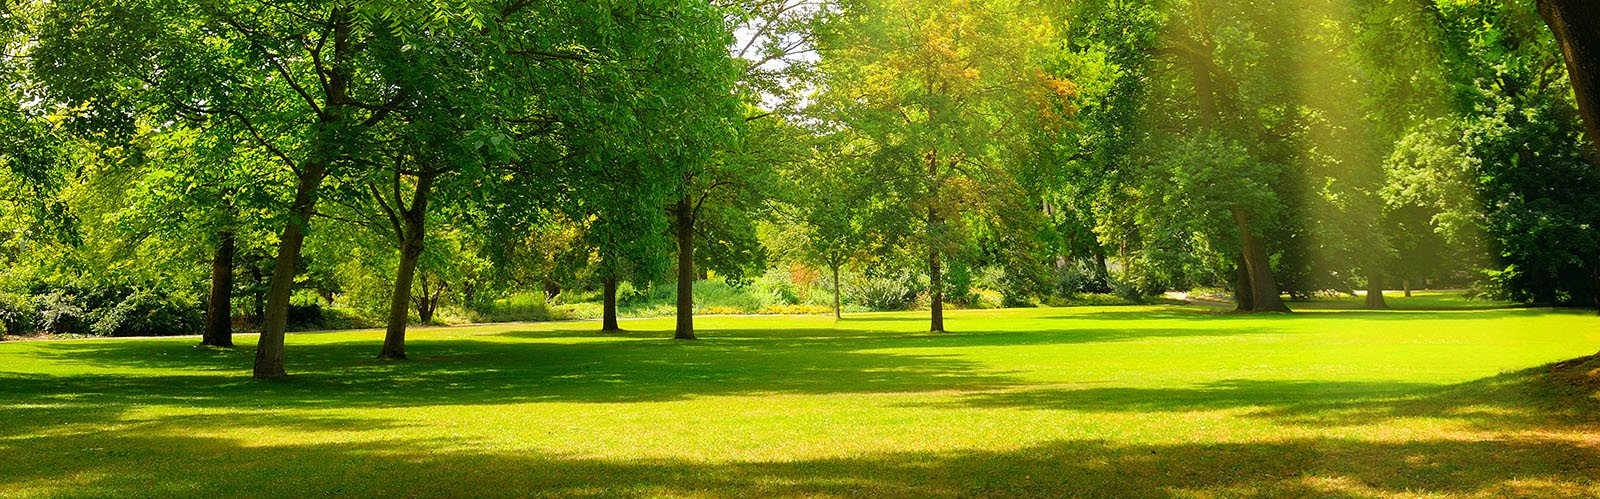 park with large grass area and trees